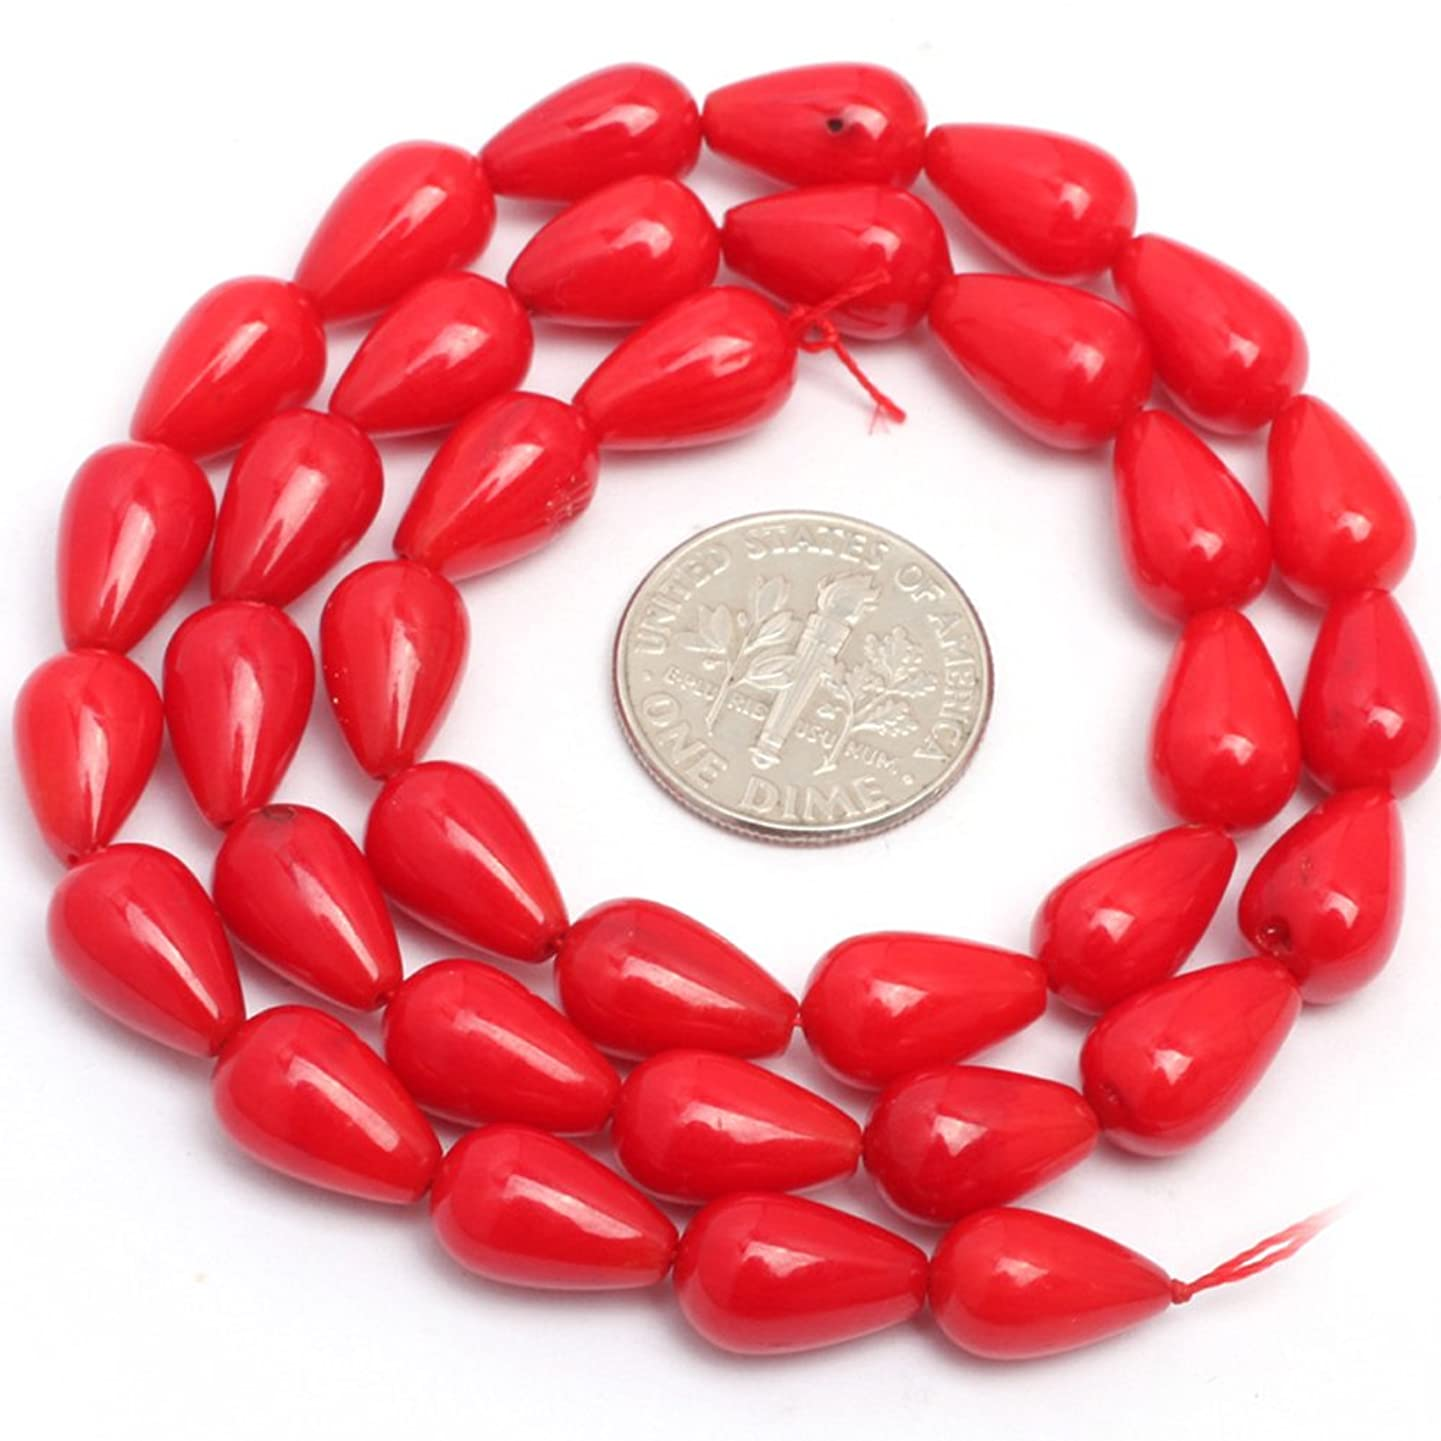 JOE FOREMAN 7x12mm Red Coral Semi Precious Gemstone Drop Loose Beads for Jewelry Making DIY Handmade Craft Supplies 15